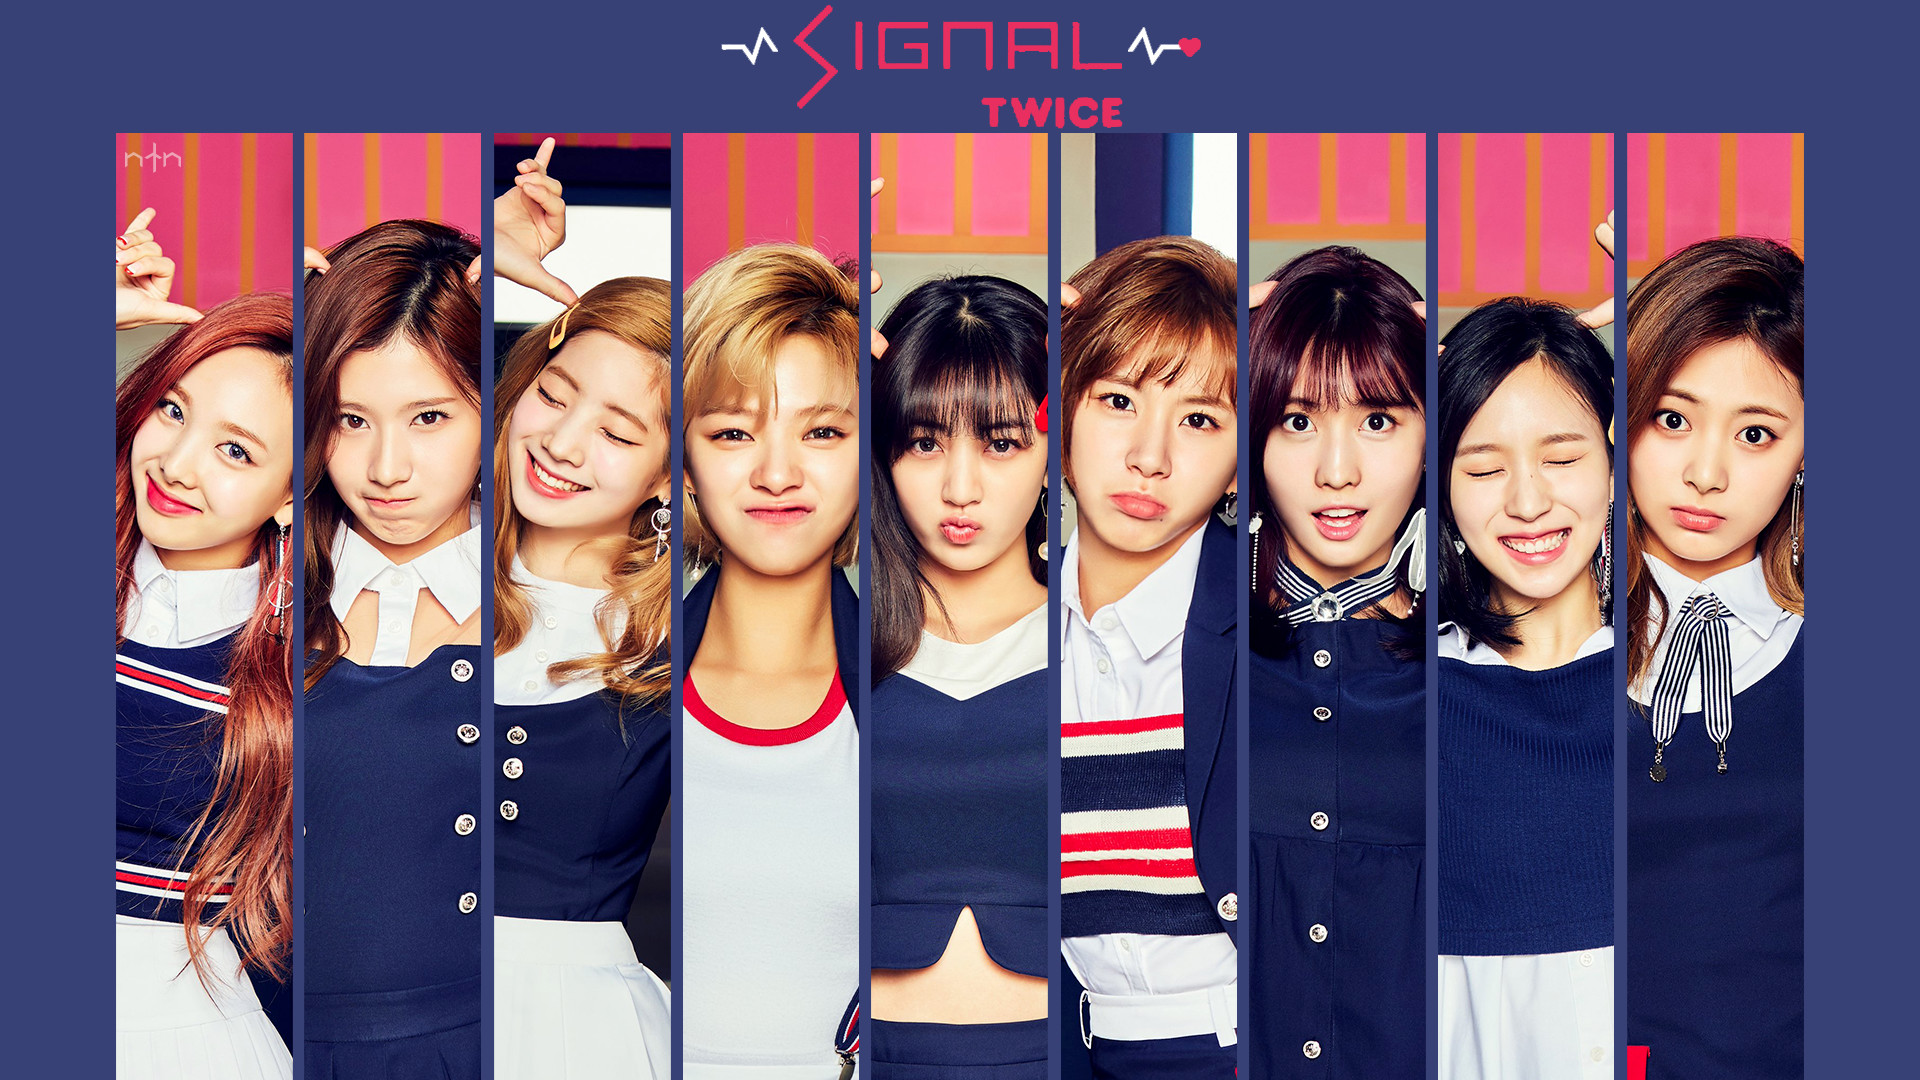 Twice Wallpapers 84 Wallpaperdata Com 4k Wallpapers Wor Card